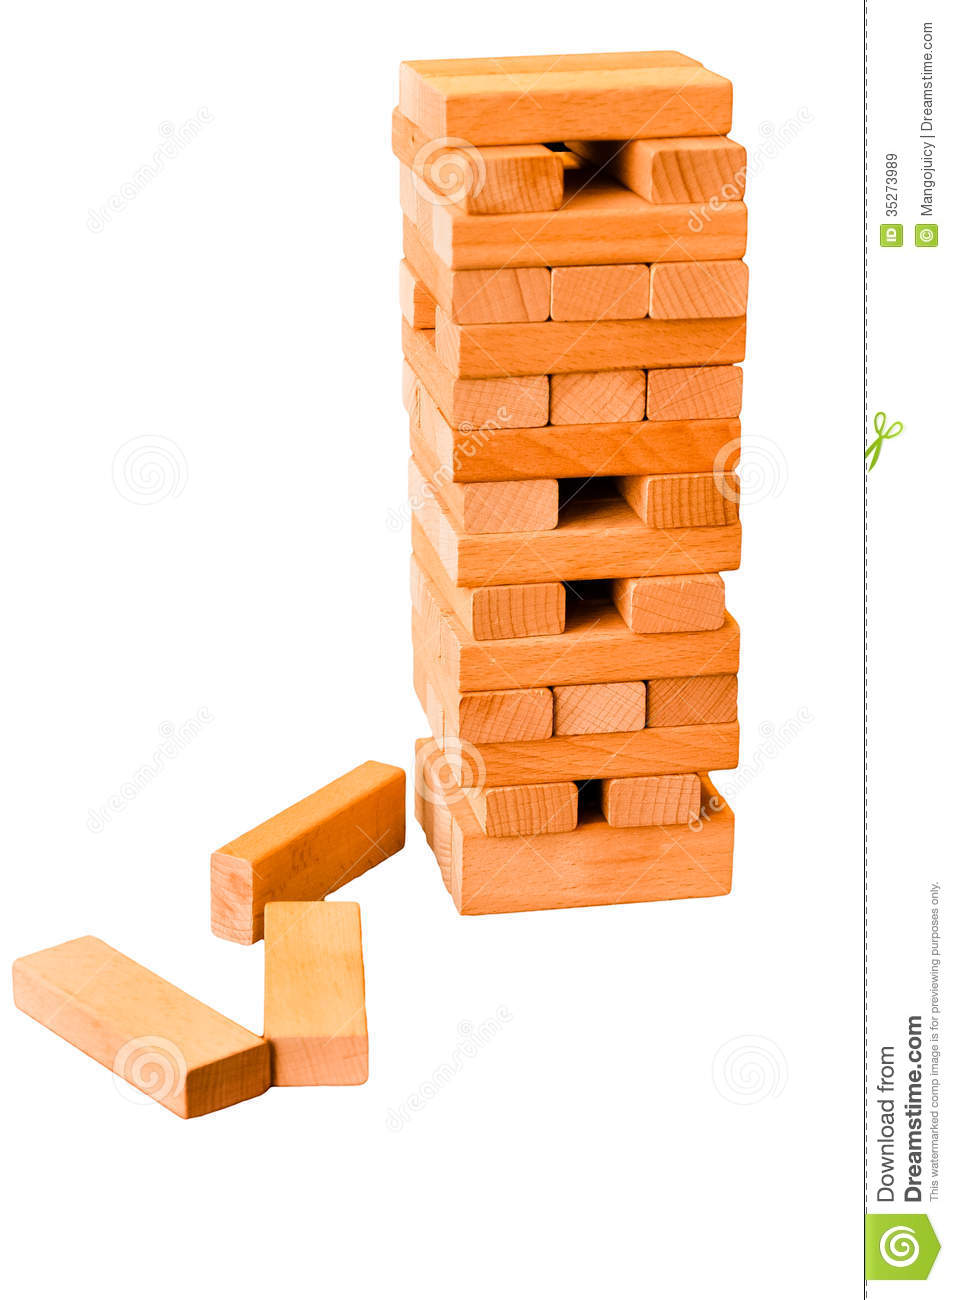 Building Blocks Video Game